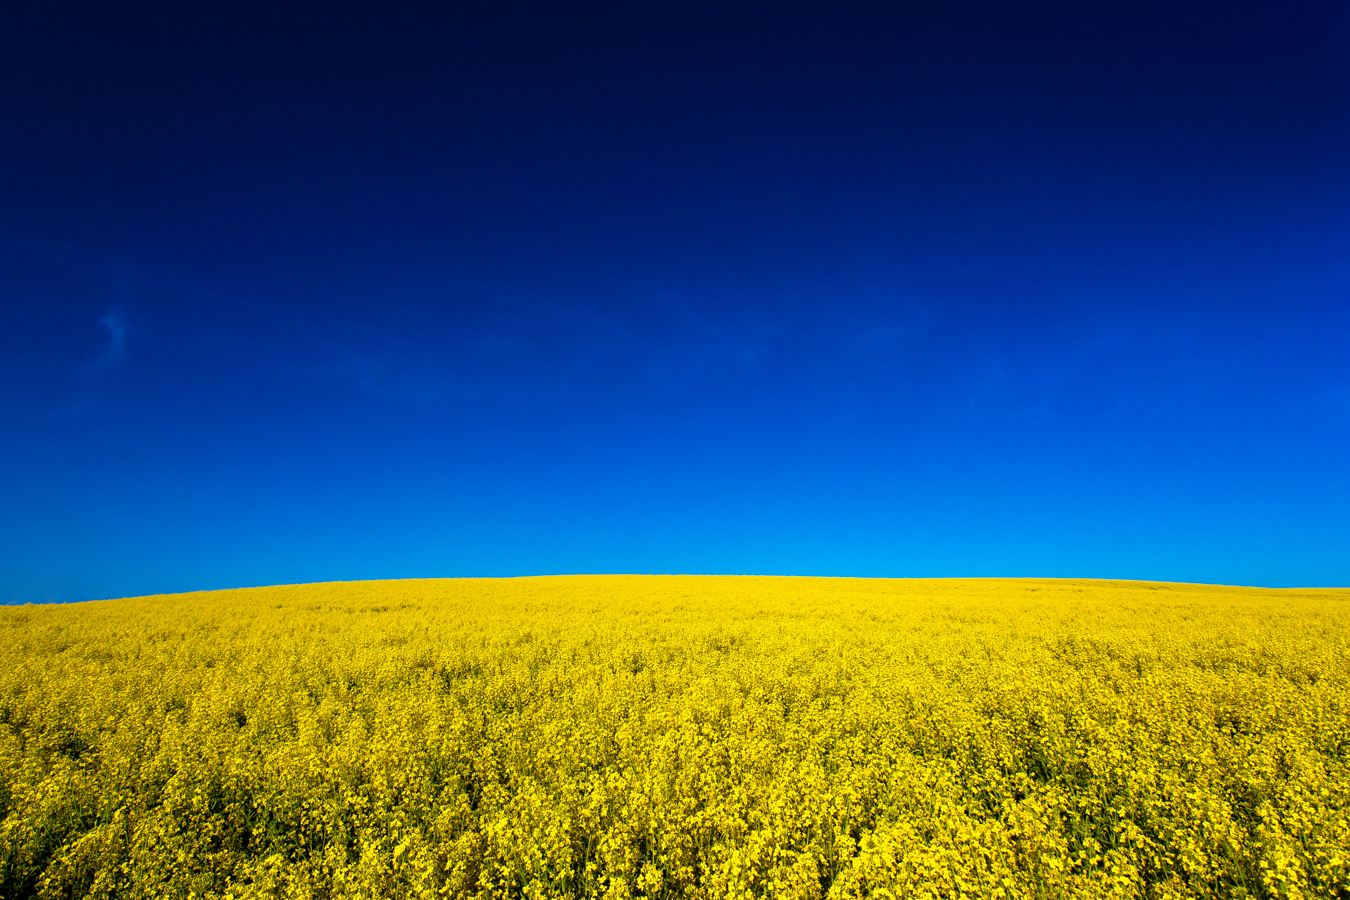 Blue & Yellow - Colfax, Washington